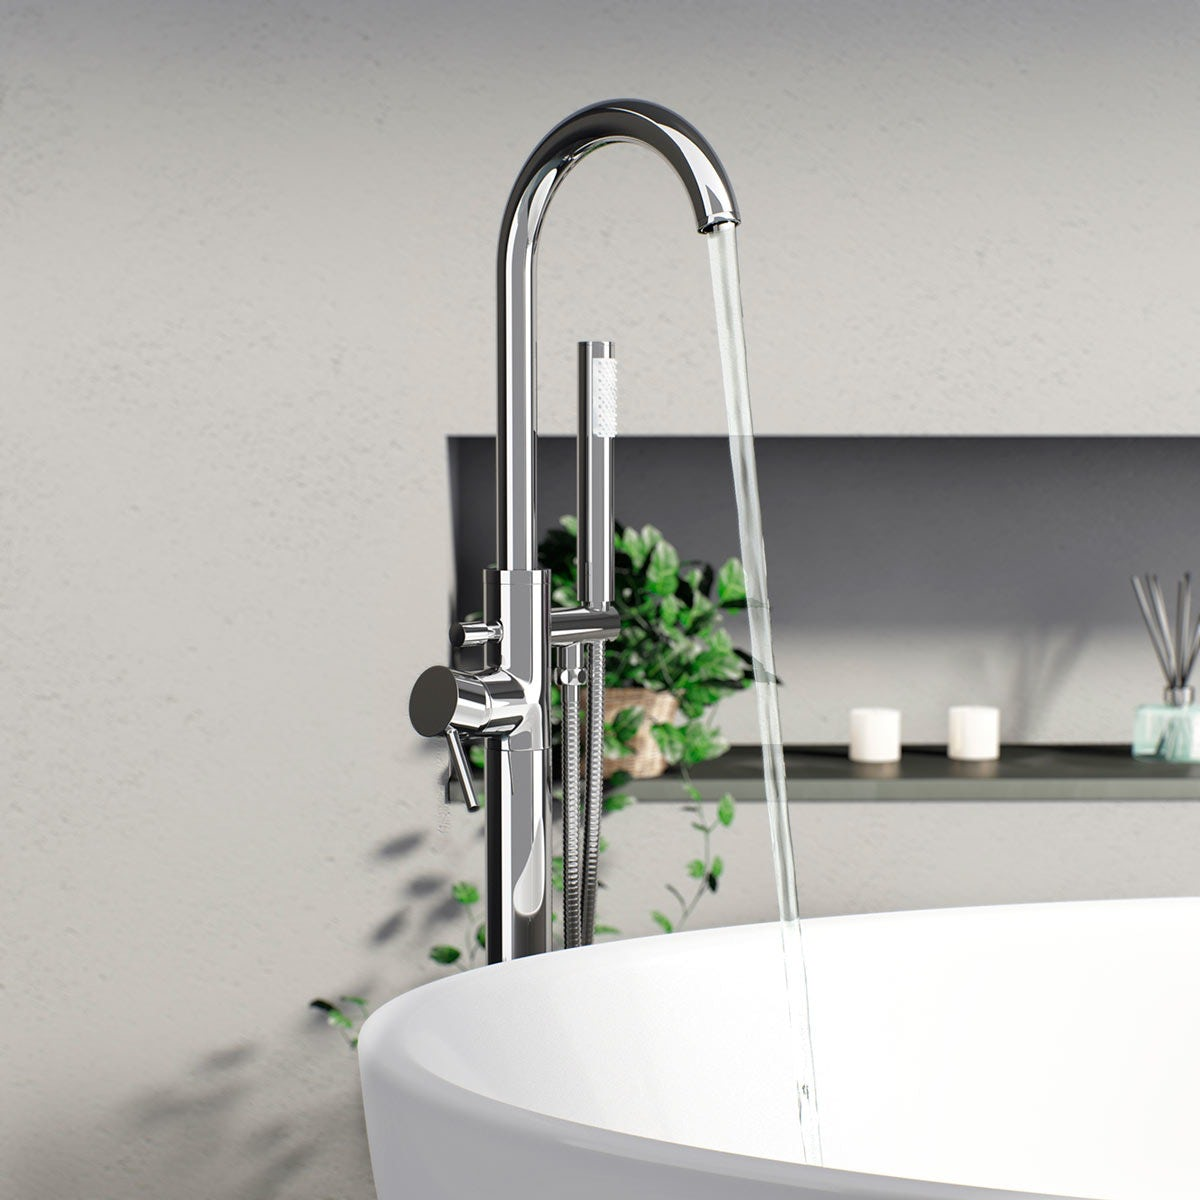 Freestanding Bath Taps Bath Taps Buying Guide Victoriaplum